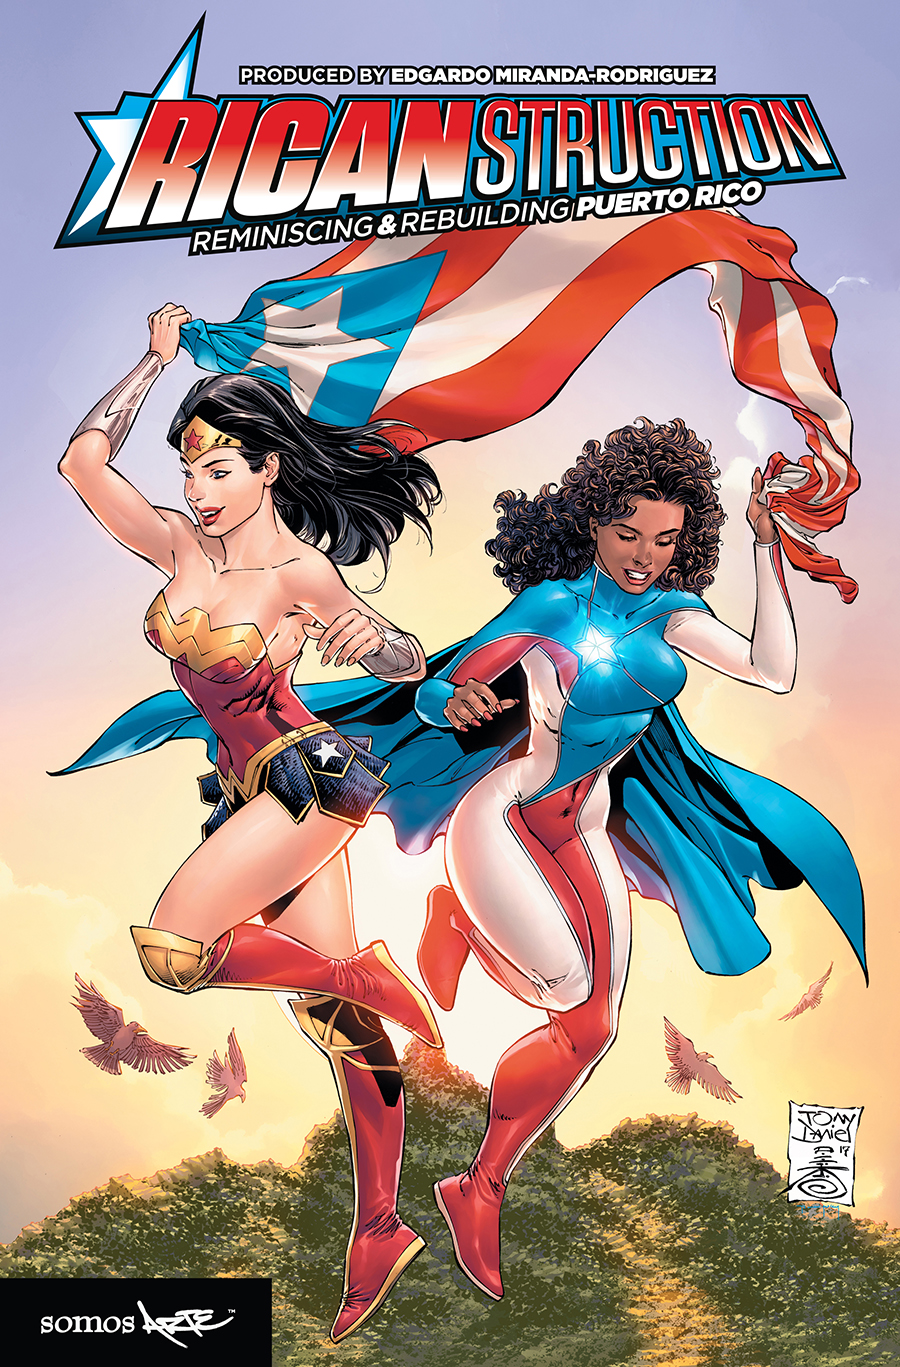 Image for Graphic Novel Ricanstruction: Reminiscing & Rebuilding Puerto Rico Cover